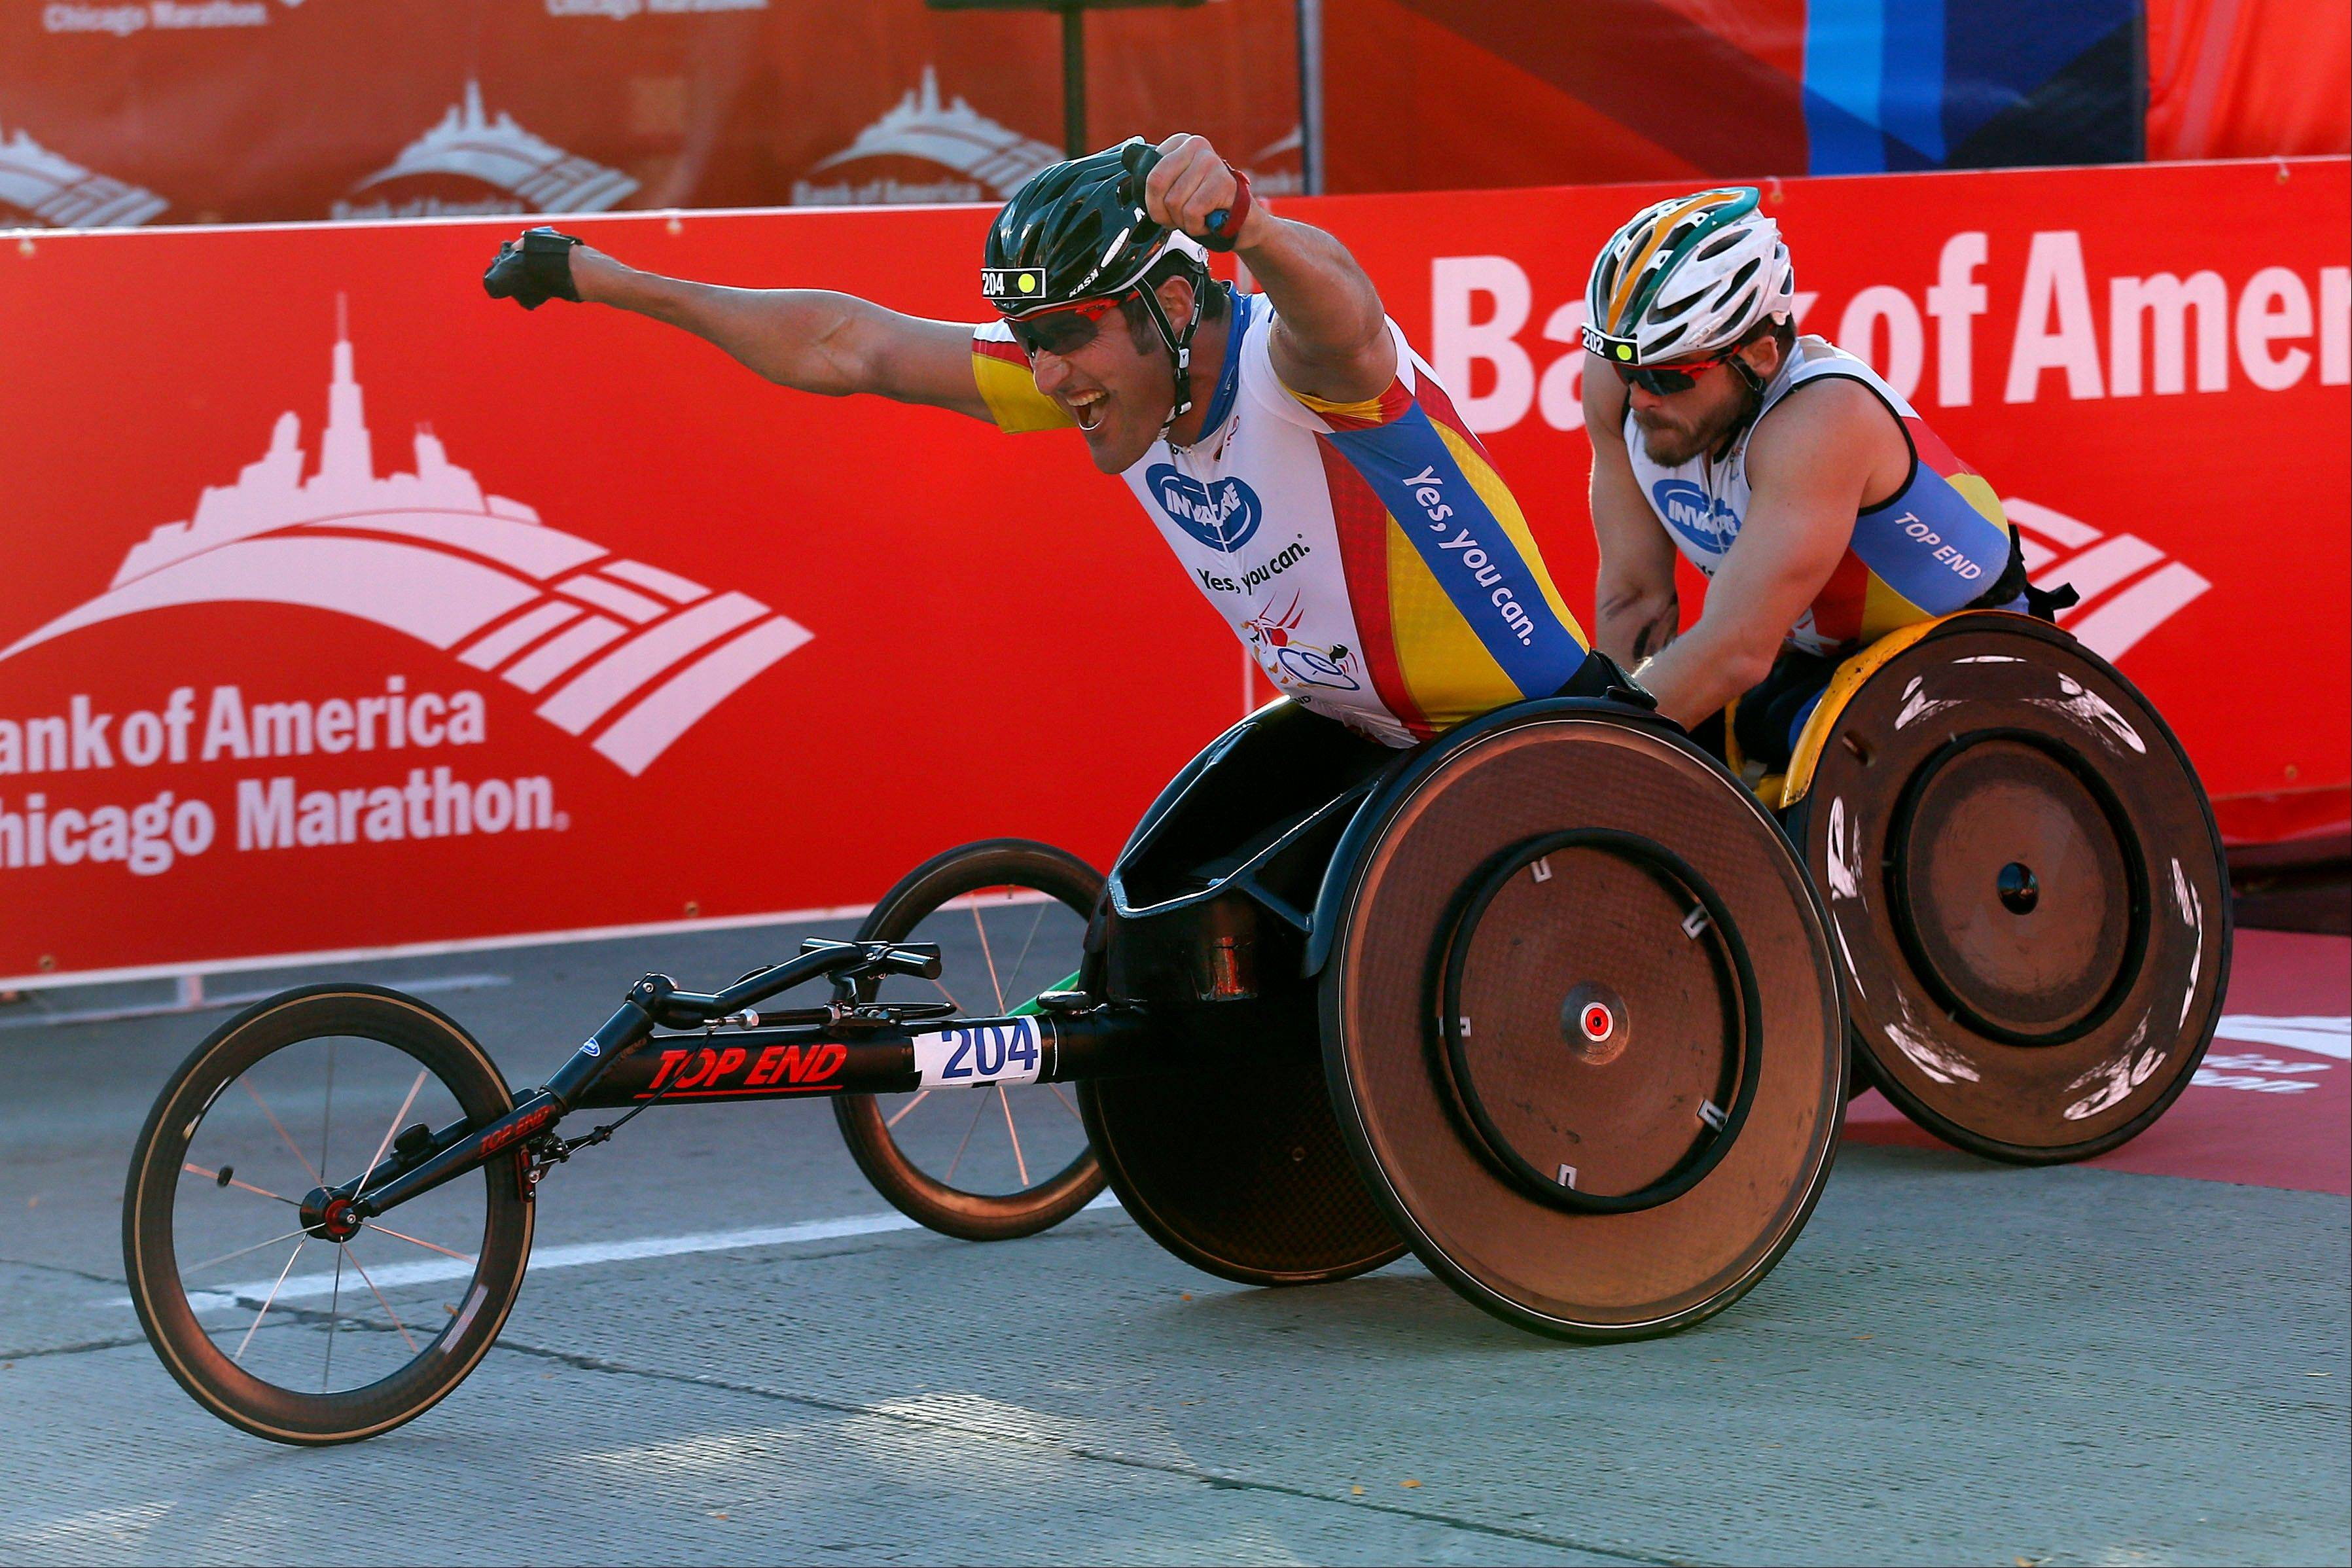 Ernst Van Dyke, left, of South Africa, edges out Kurt Fearnley, right, of Australia, to win the men's wheelchair division during the Chicago Marathon on Sunday.